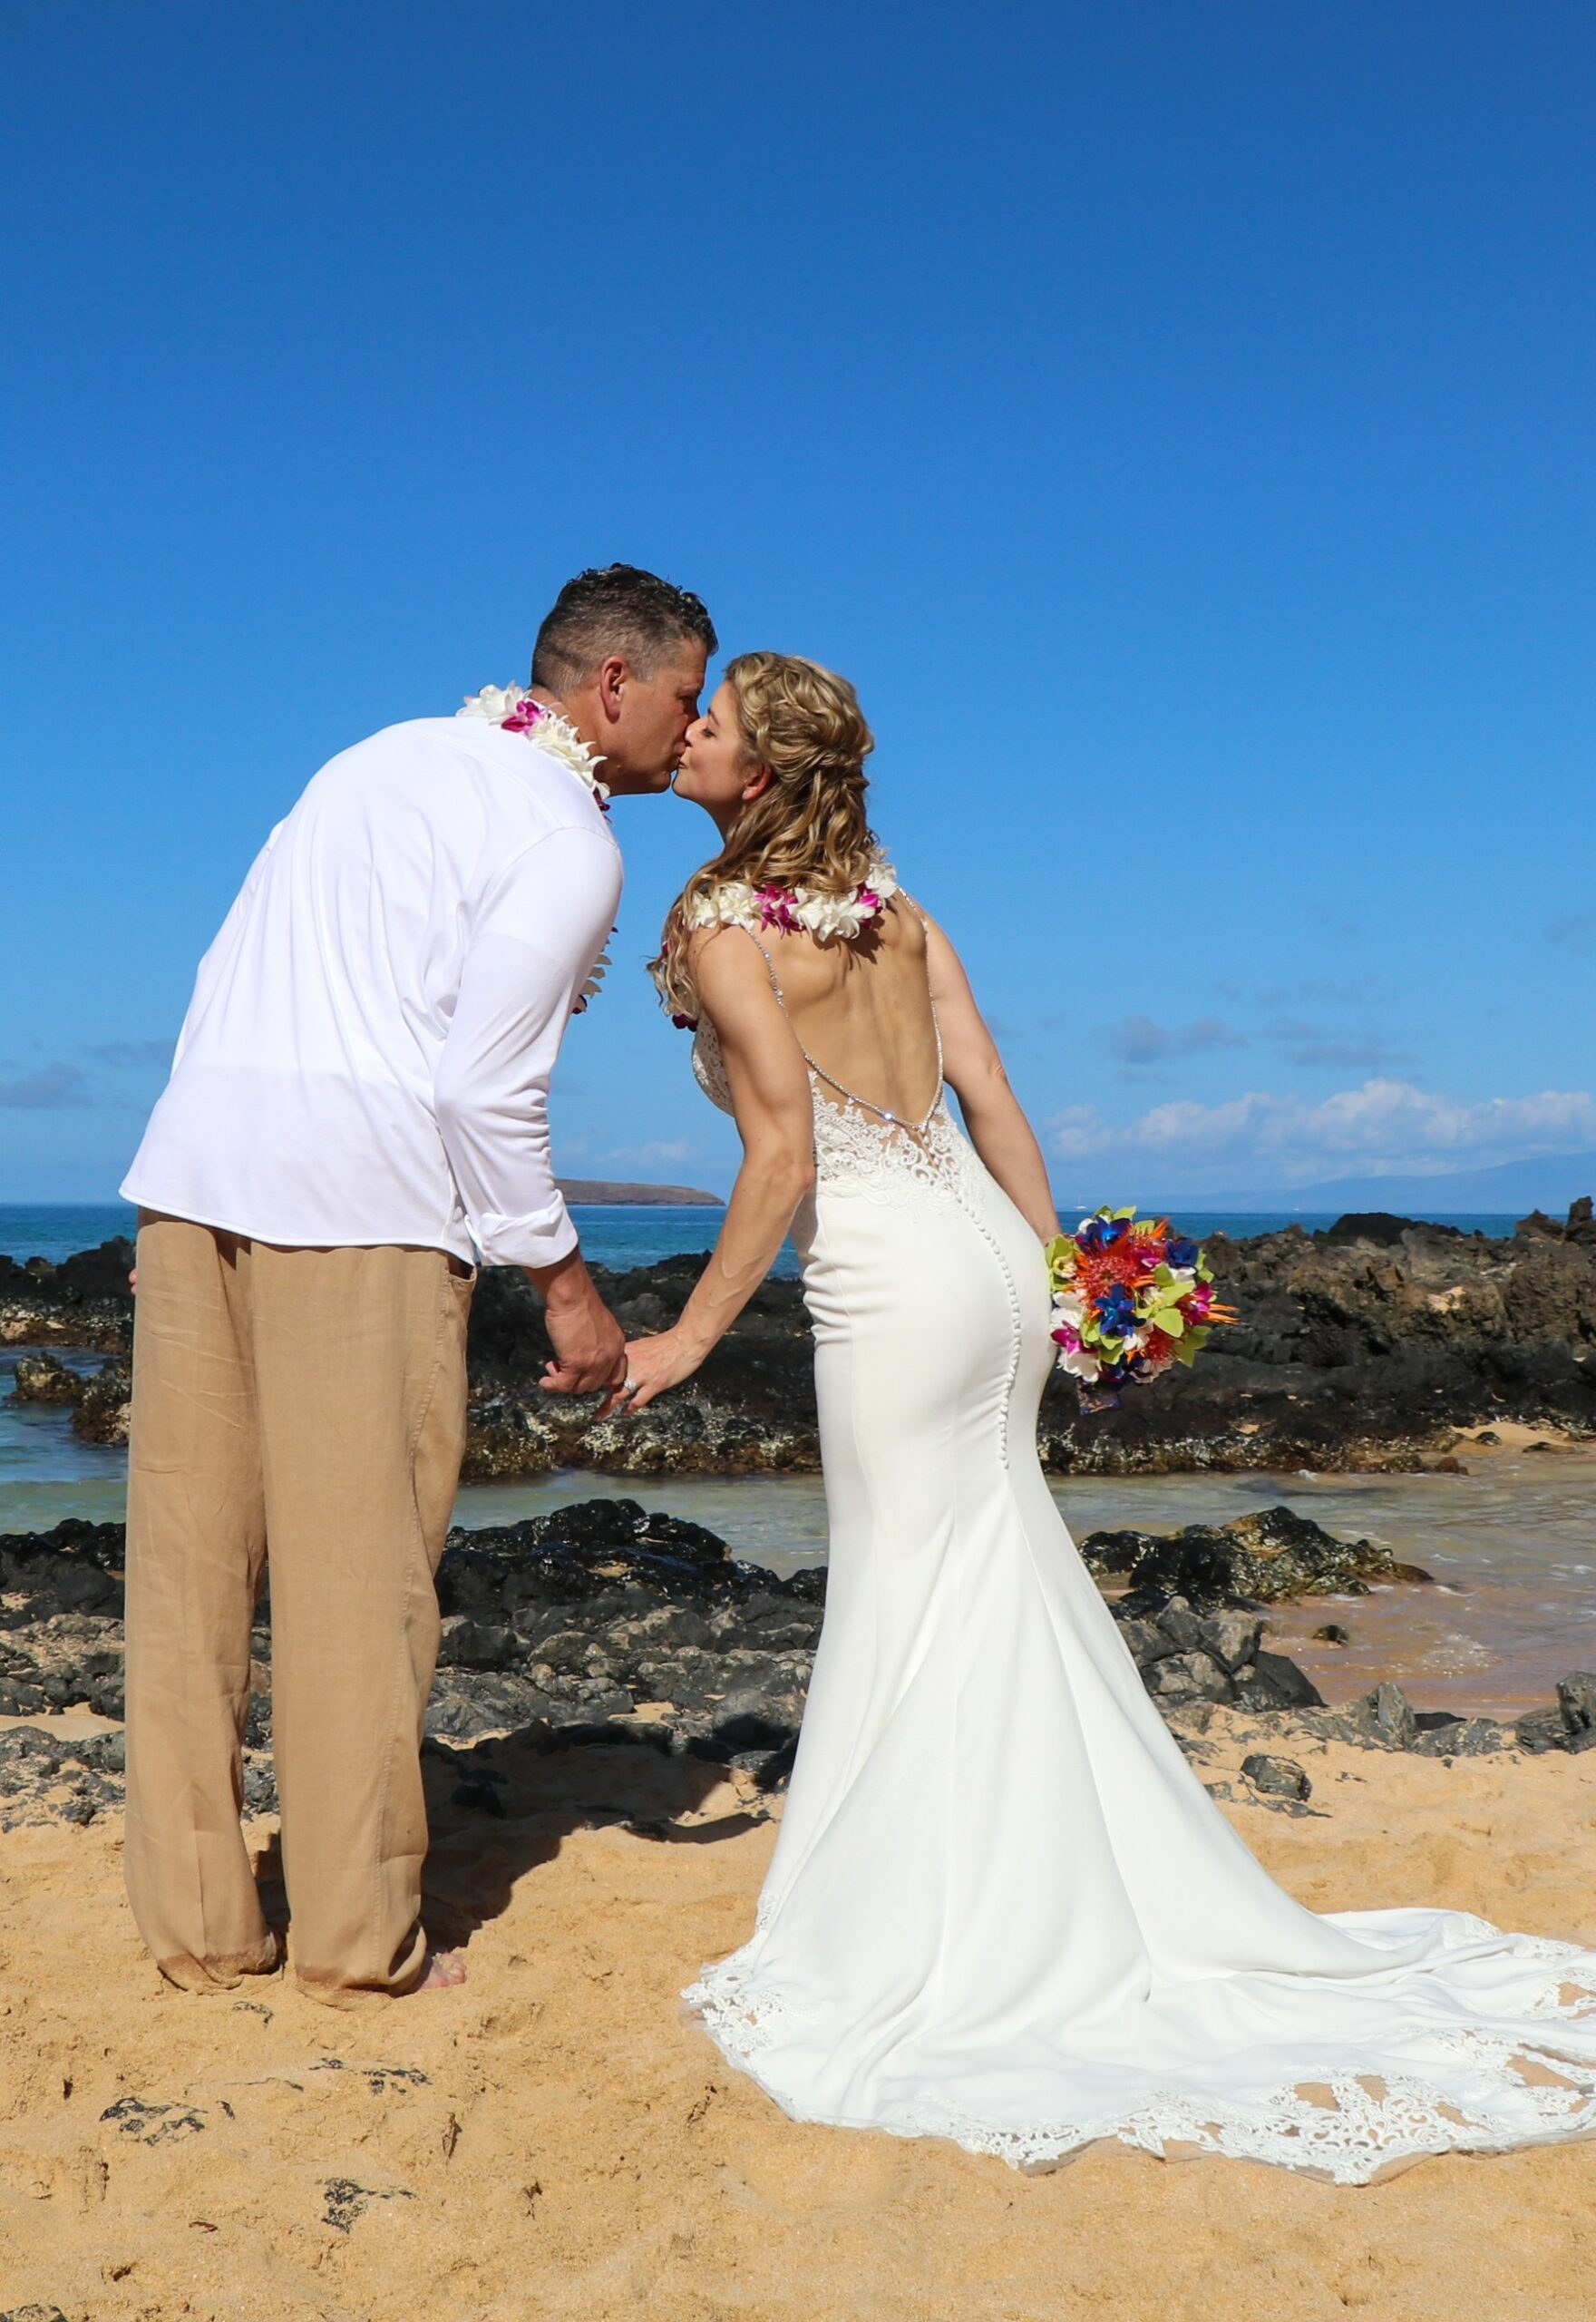 Maui Wedding Photography Lovers Package $1499